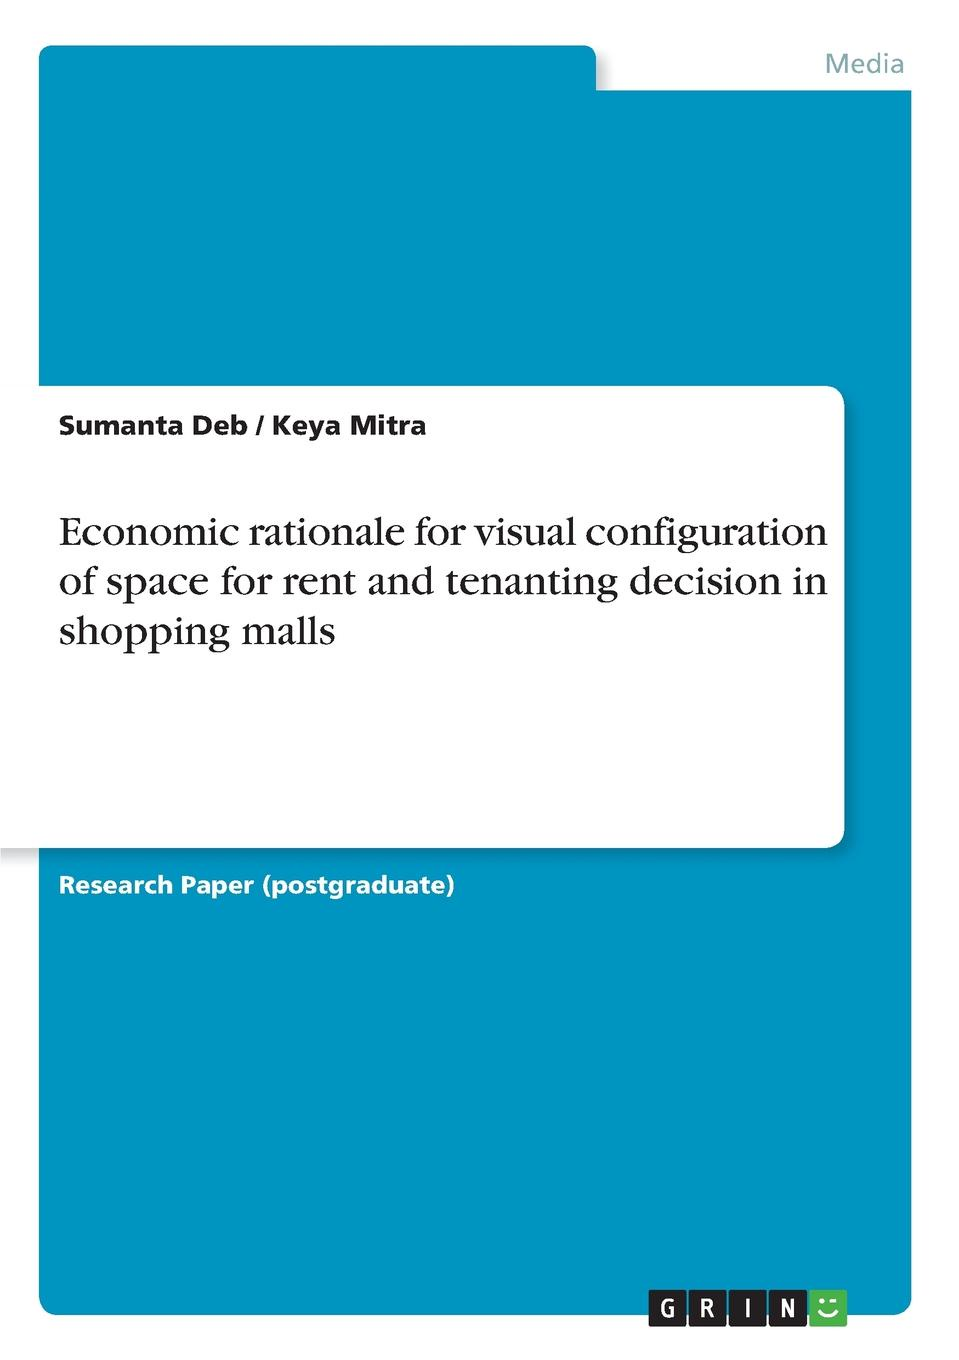 Sumanta Deb, Keya Mitra Economic rationale for visual configuration of space for rent and tenanting decision in shopping malls